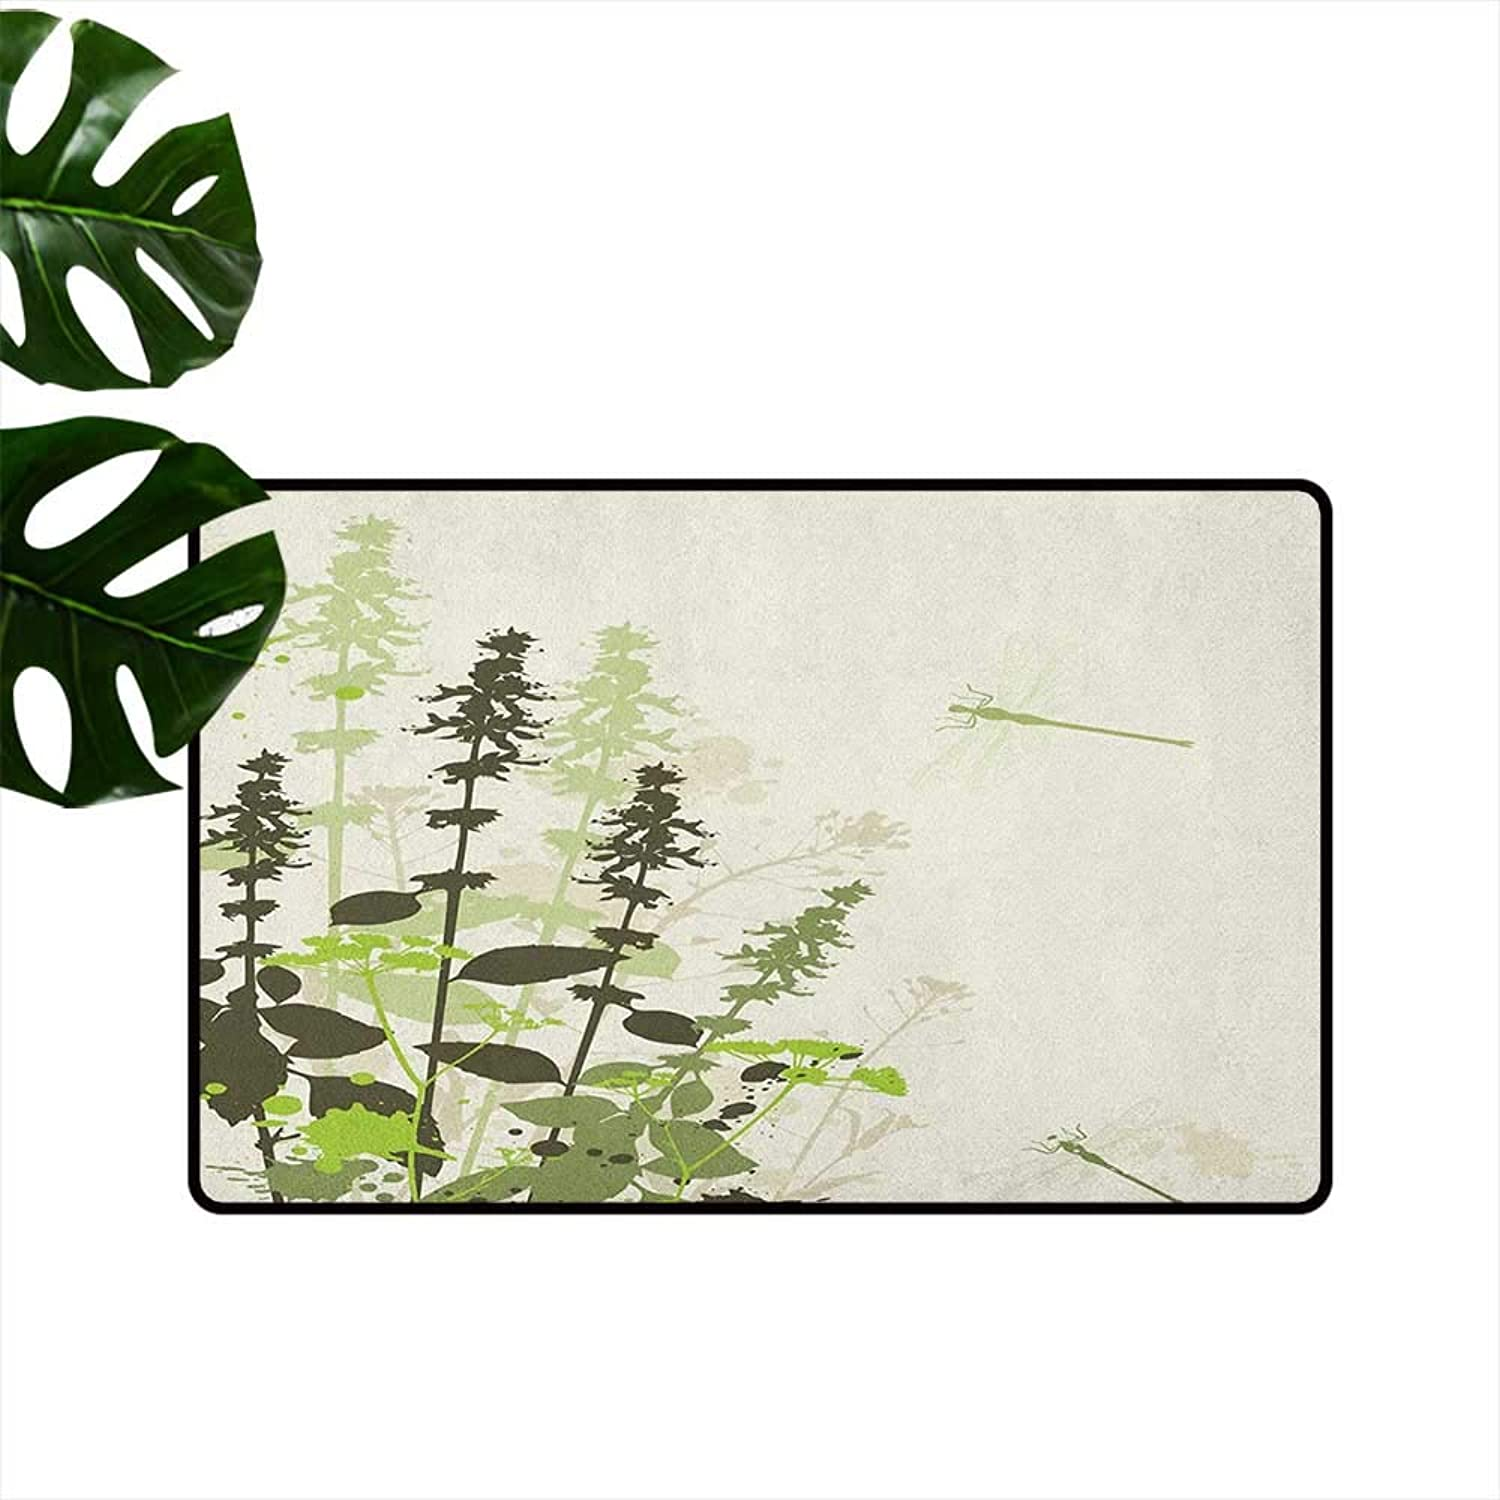 Dragonfly Fashion Door mat Nature Plants Grass with Wildflowers with Paintbrush Effects Print Antifouling W29 x L39 Army and Pale Green Cream